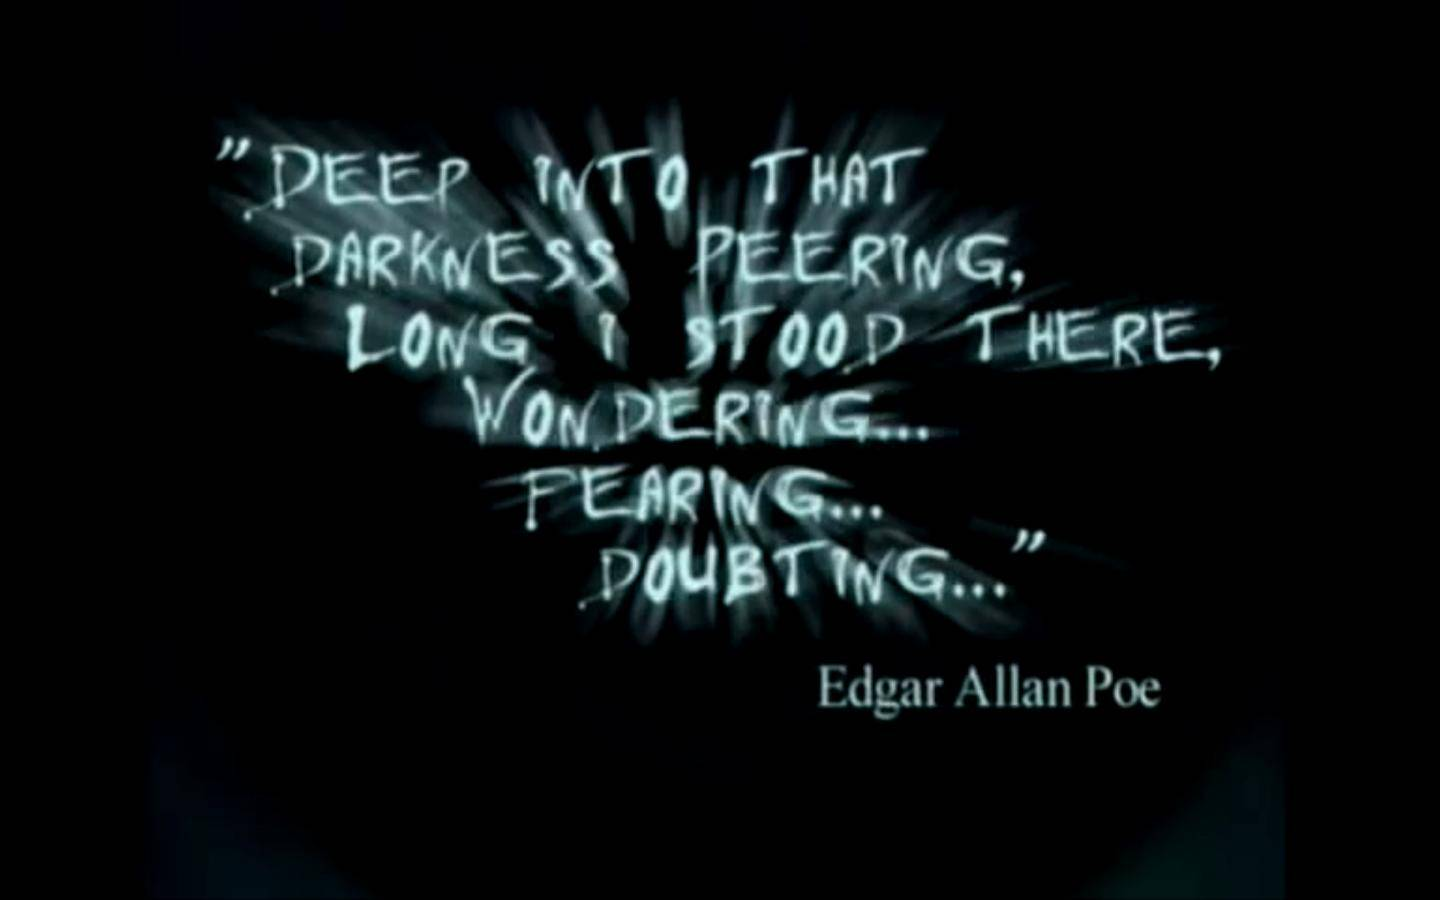 Poe Quotes 7 A picture with a Edgar Allan Poe quote Edgar Allan Poe 1440x900